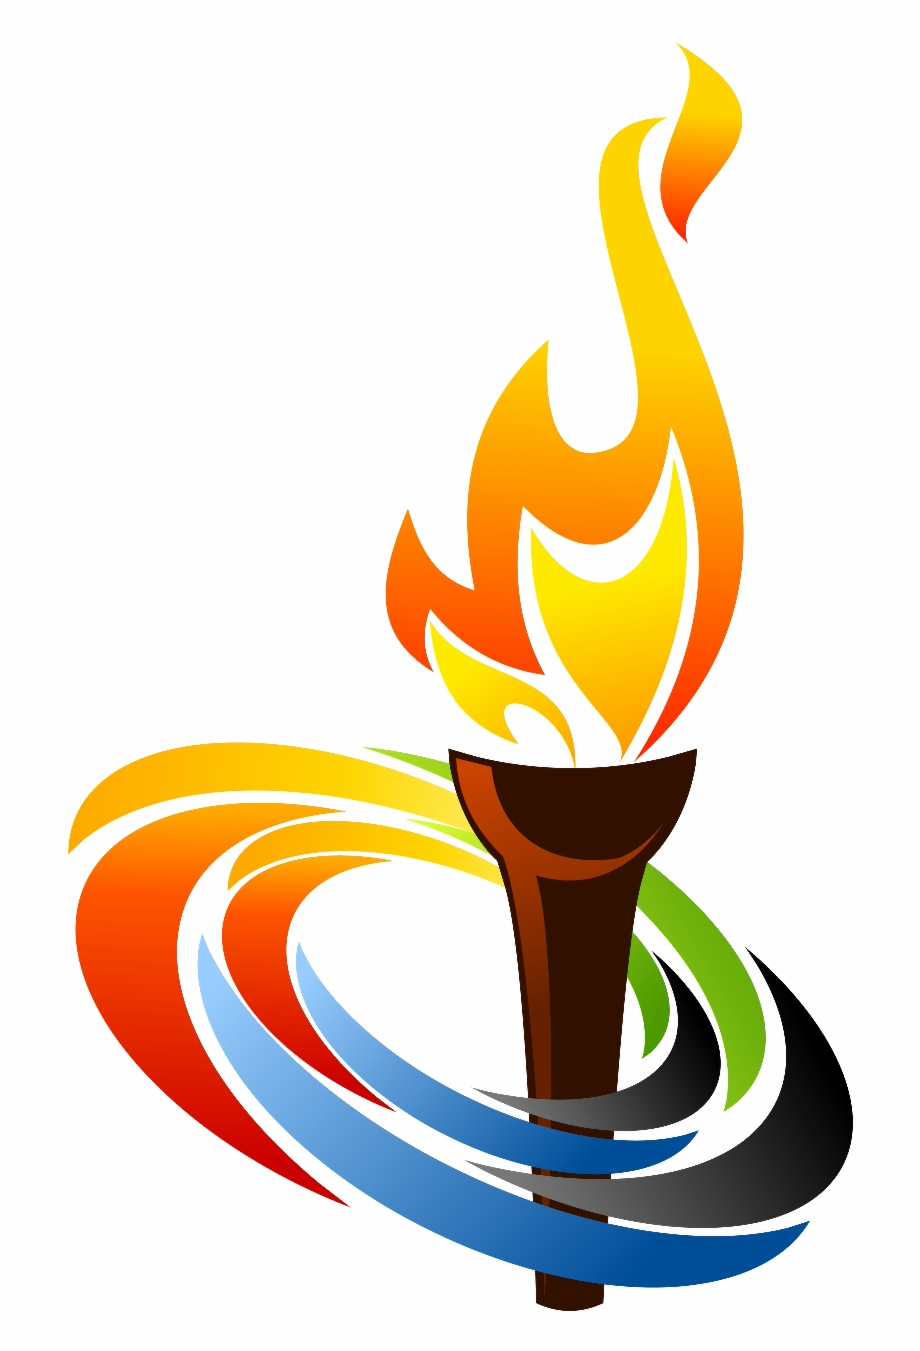 Olympic clipart lamp. Pics for torch flame